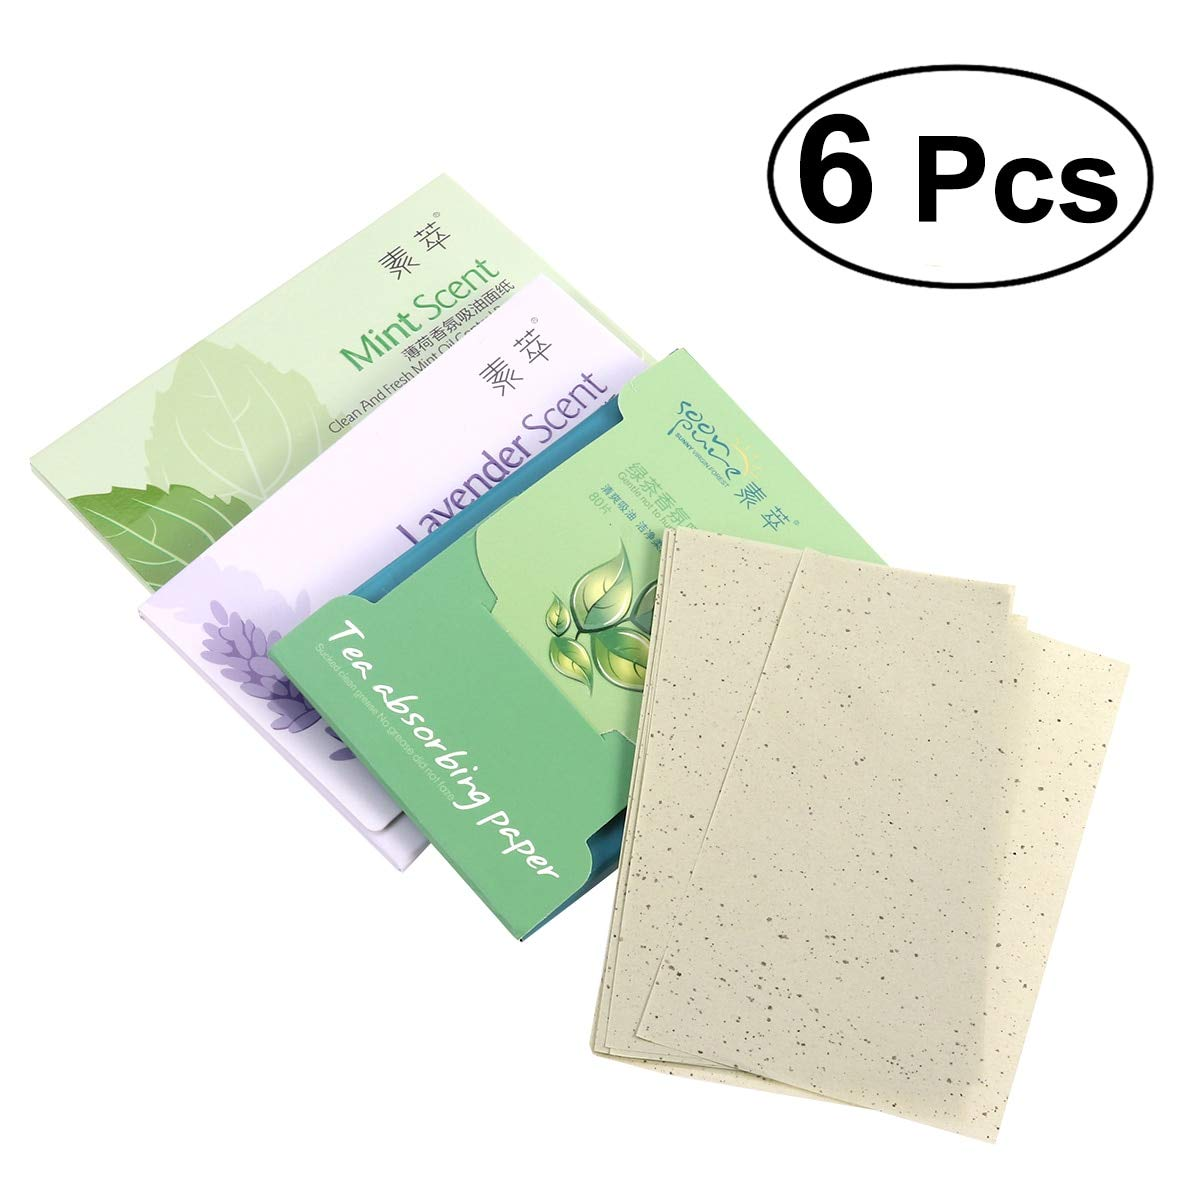 Gift-4Car - 6 Pack Oil Absorbing Paper Sheets Tissues Oil Blotting Papers for Face (Green Teax2 + Lavenderx2 + Mintx2)